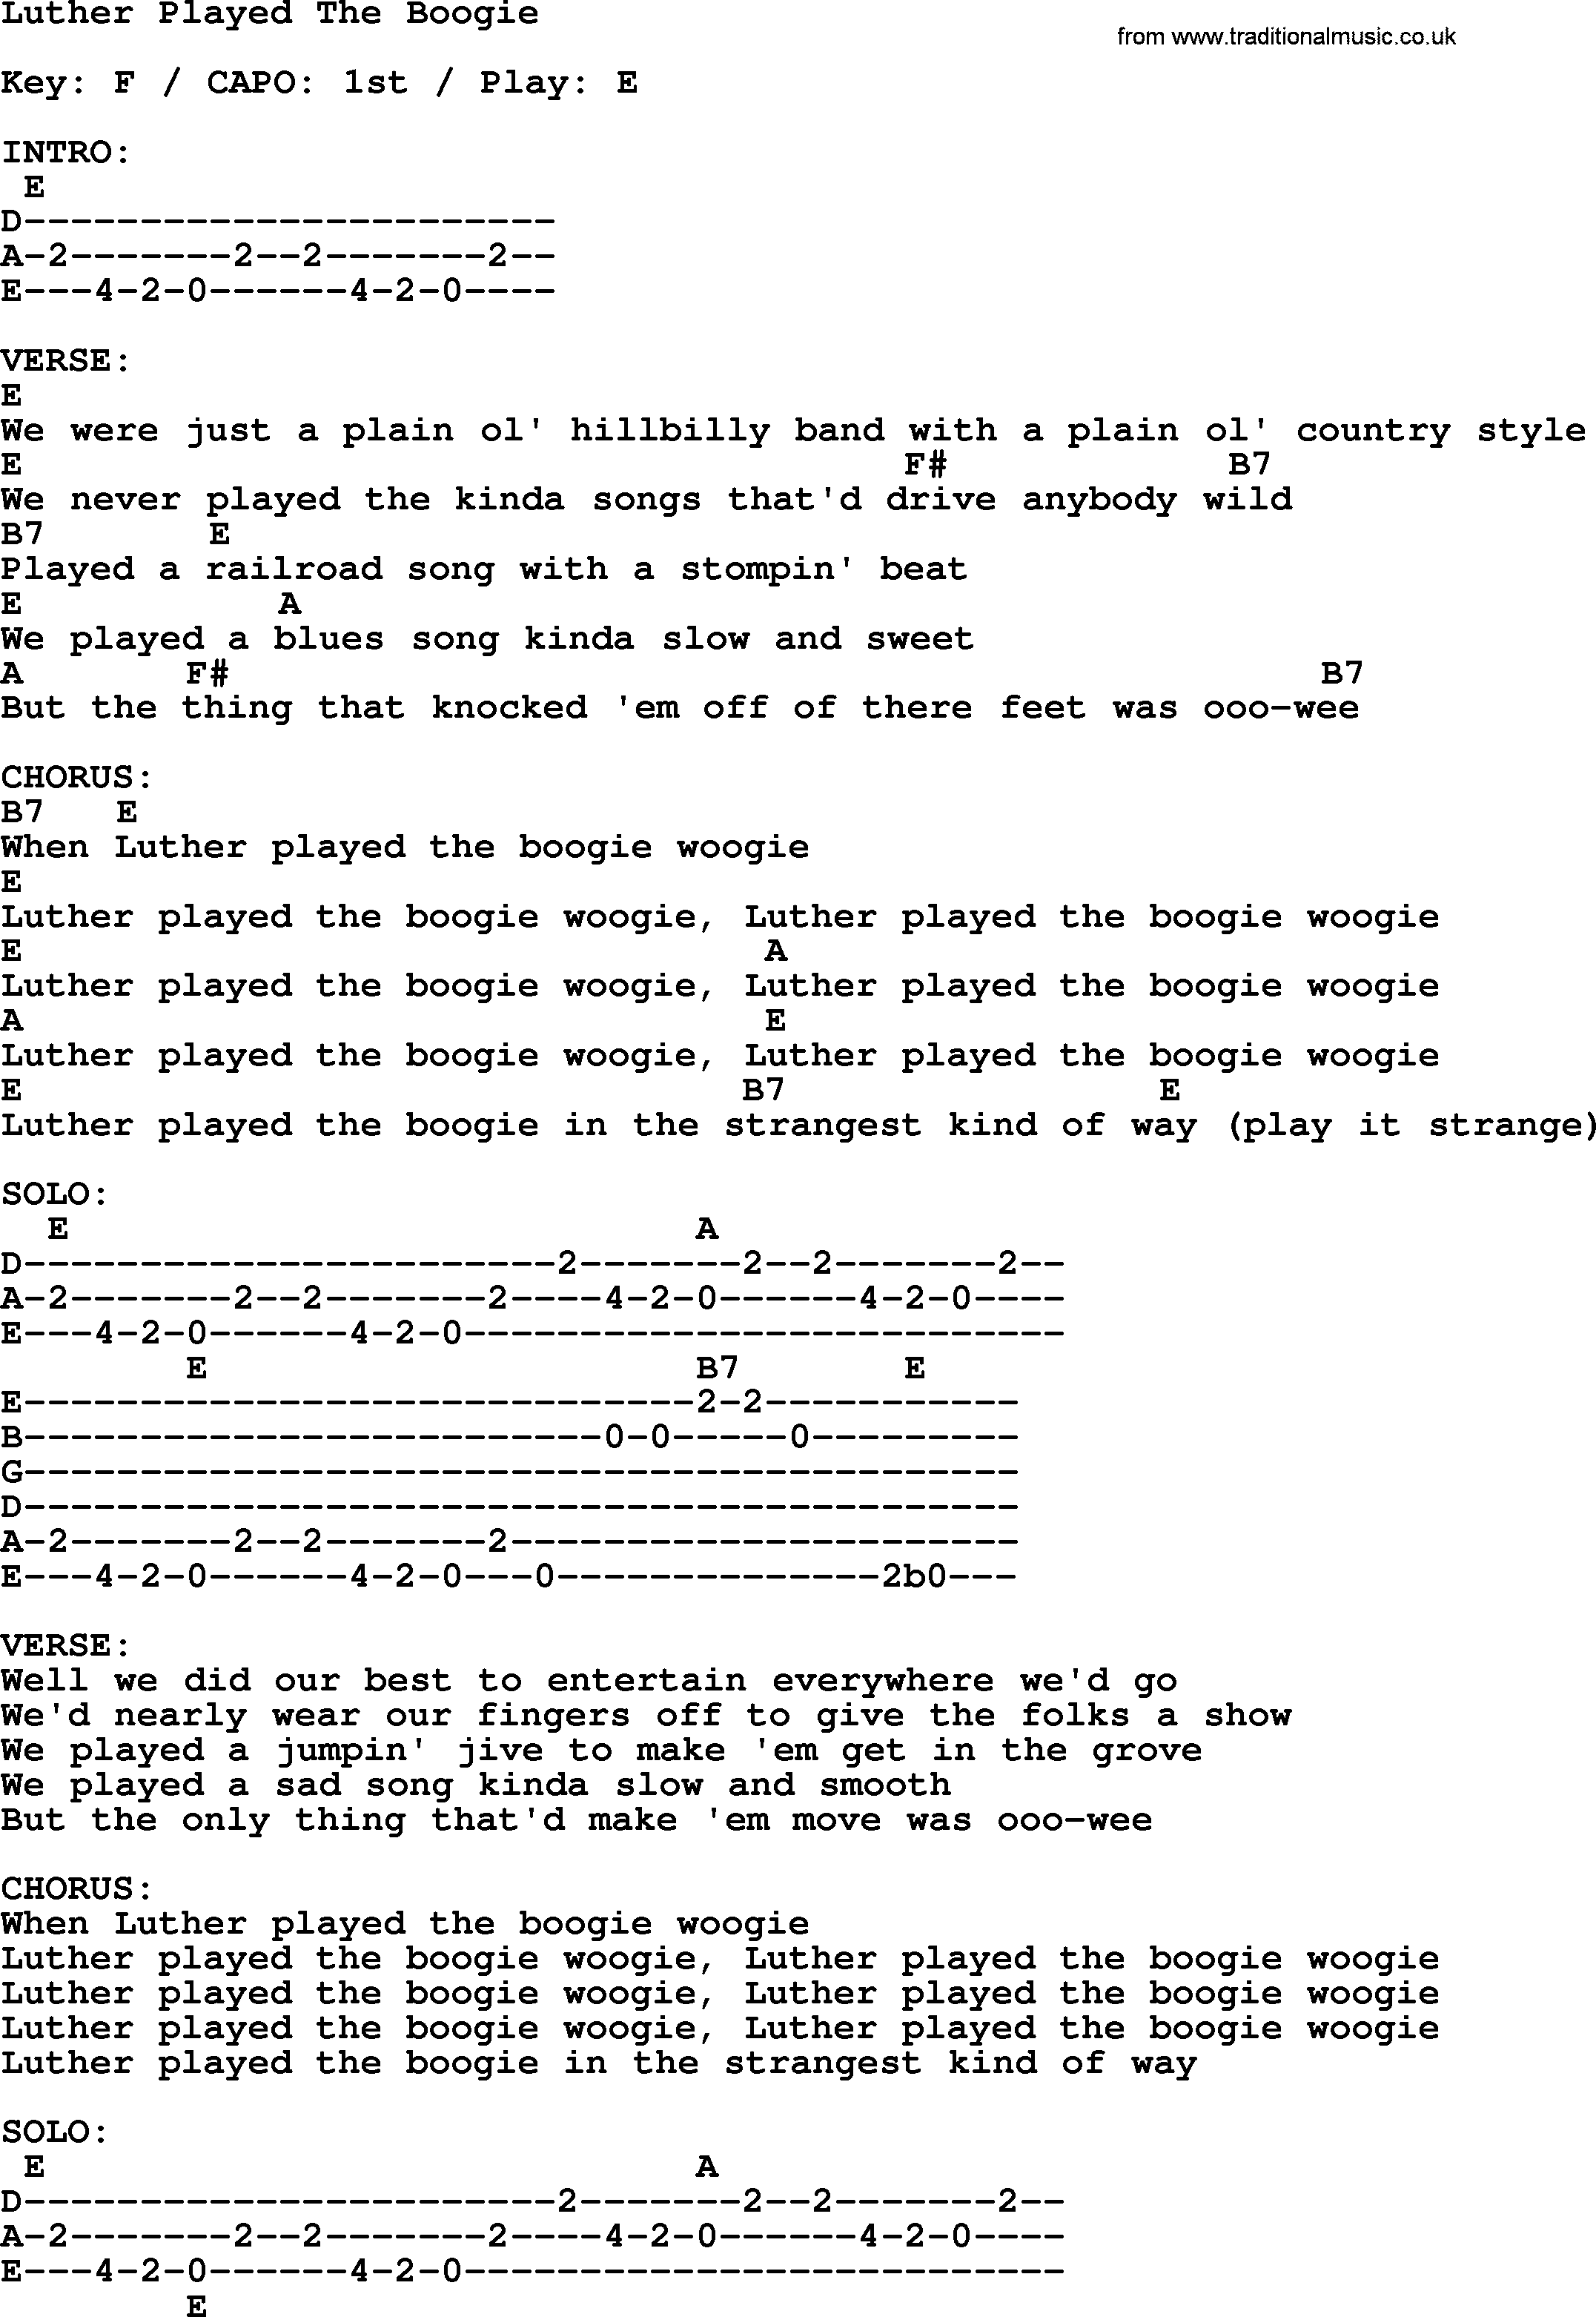 Johnny Cash Song Luther Played The Boogie Lyrics And Chords